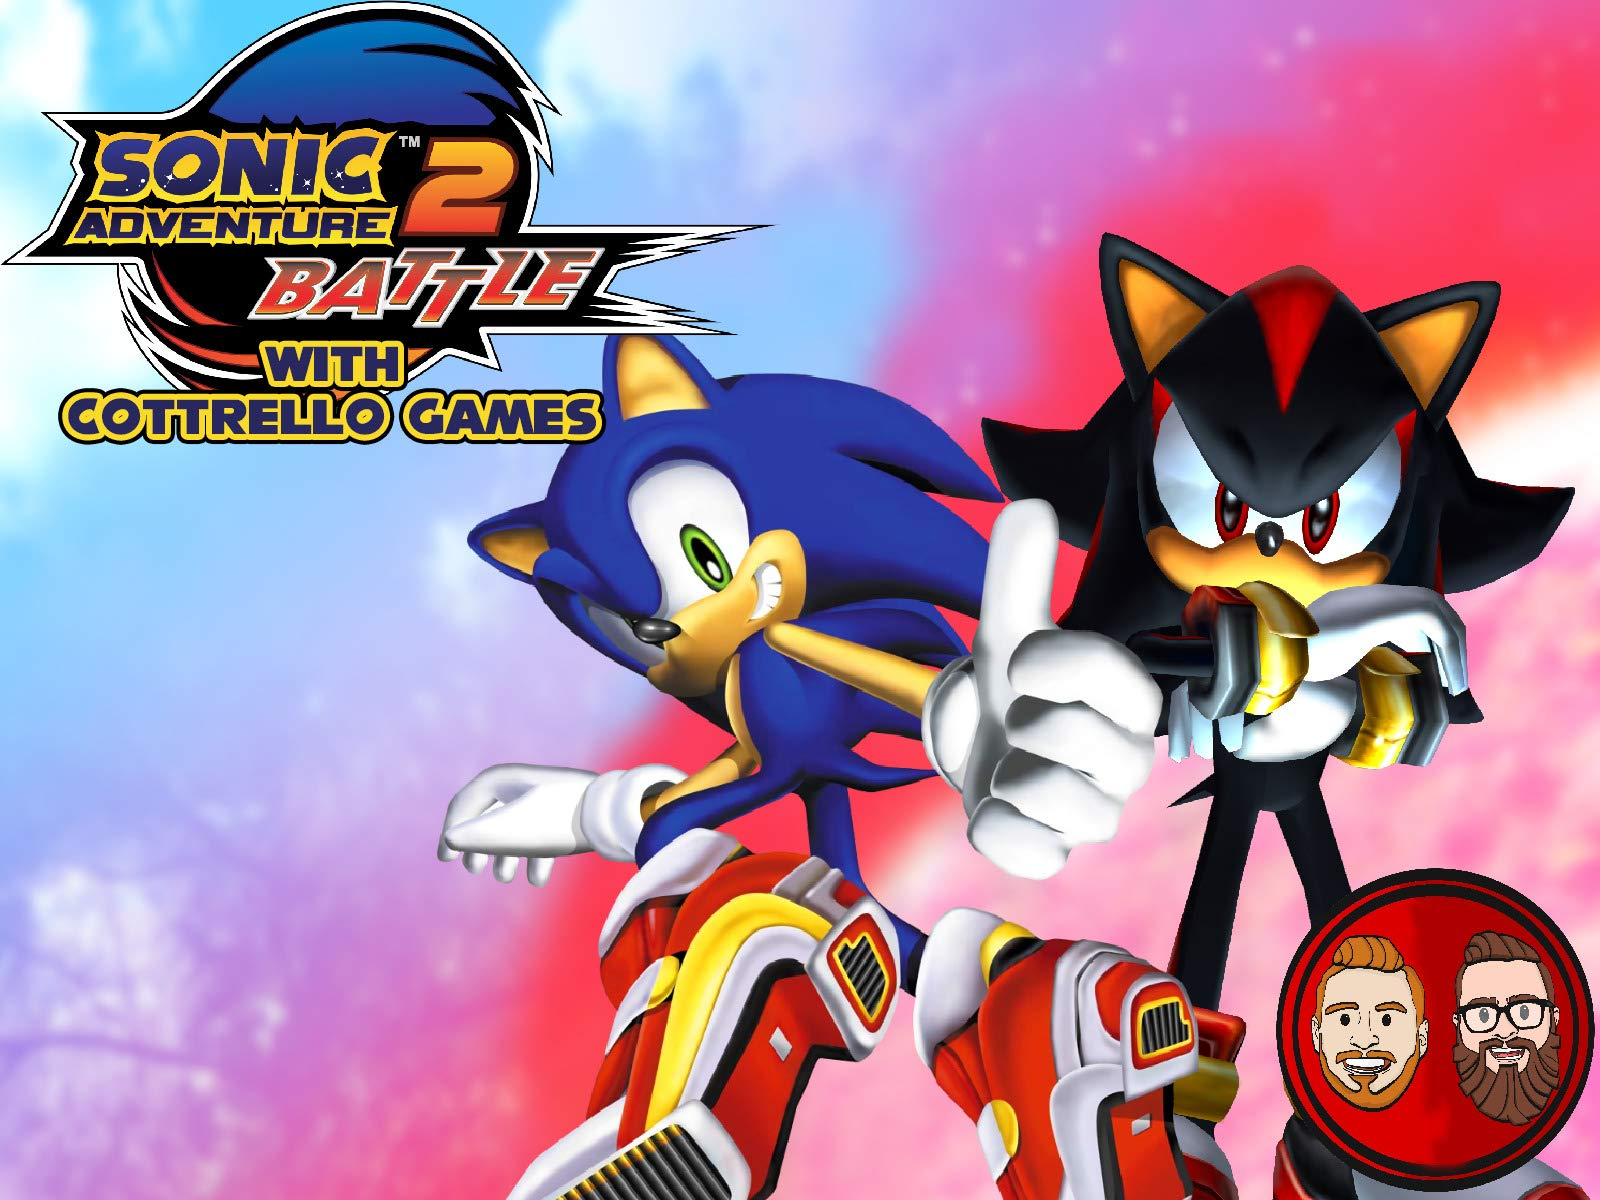 Sonic Adventure 2 Battle with Cottrello Games